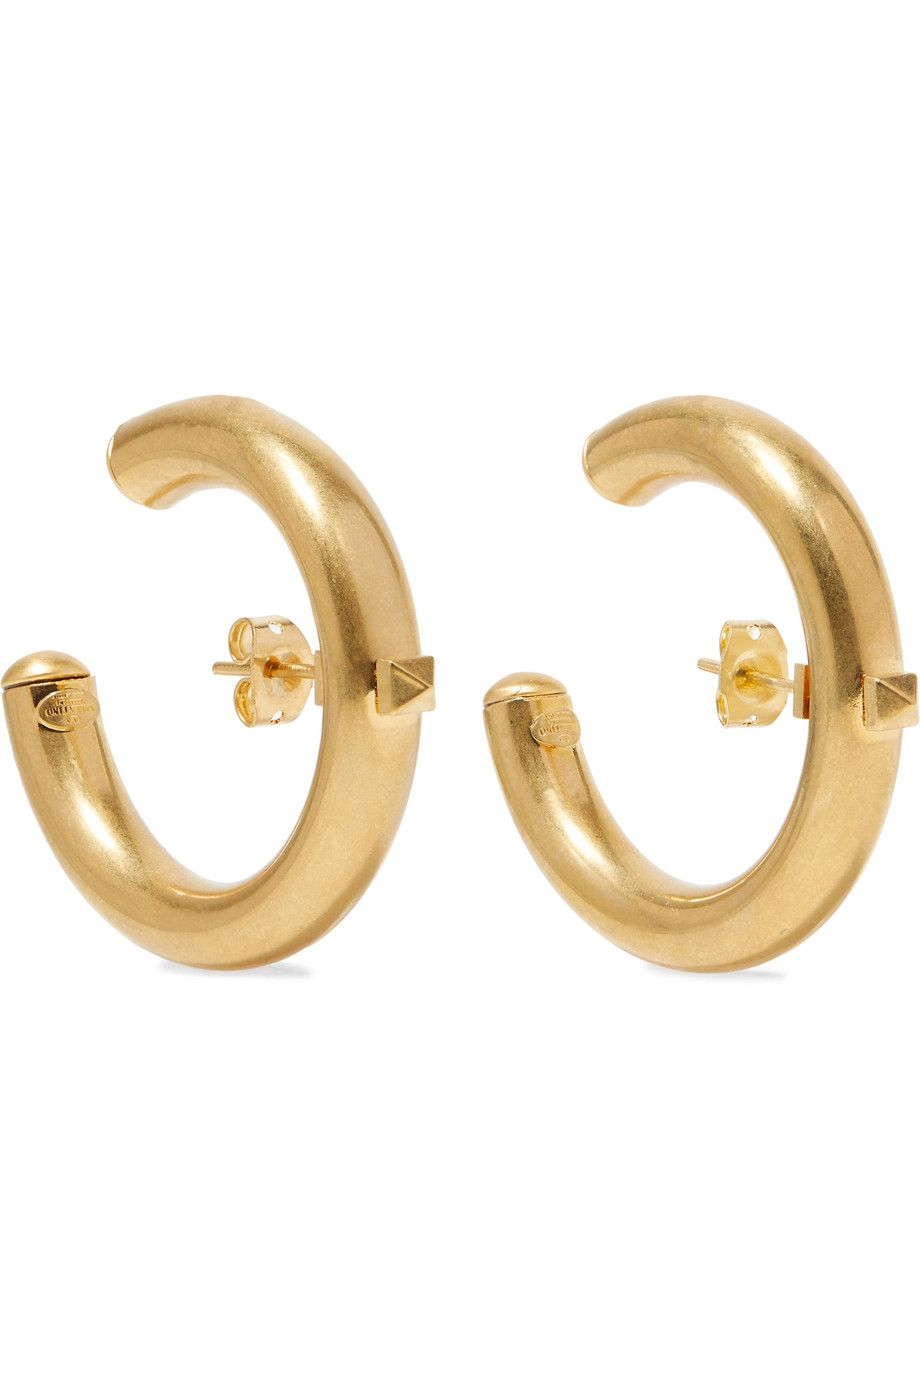 """Valentino Garavani The Rockstud Hoop Earrings Valentino net-a-porter.com $297.50 SHOP NOW """"Besides a By Far bag, I've added all of the earrings from Net-A-Porter's sale to my shopping cart. I tend to rely on accessories during summer office hours, because I can't add anything that adds...sweat to my outfit. Thus, jewelry and bags. This Valentino pair is something I could easily wear on the daily, but the centered post makes them way more interesting than your average hoops.""""— Justine Carreon, Market Editor"""